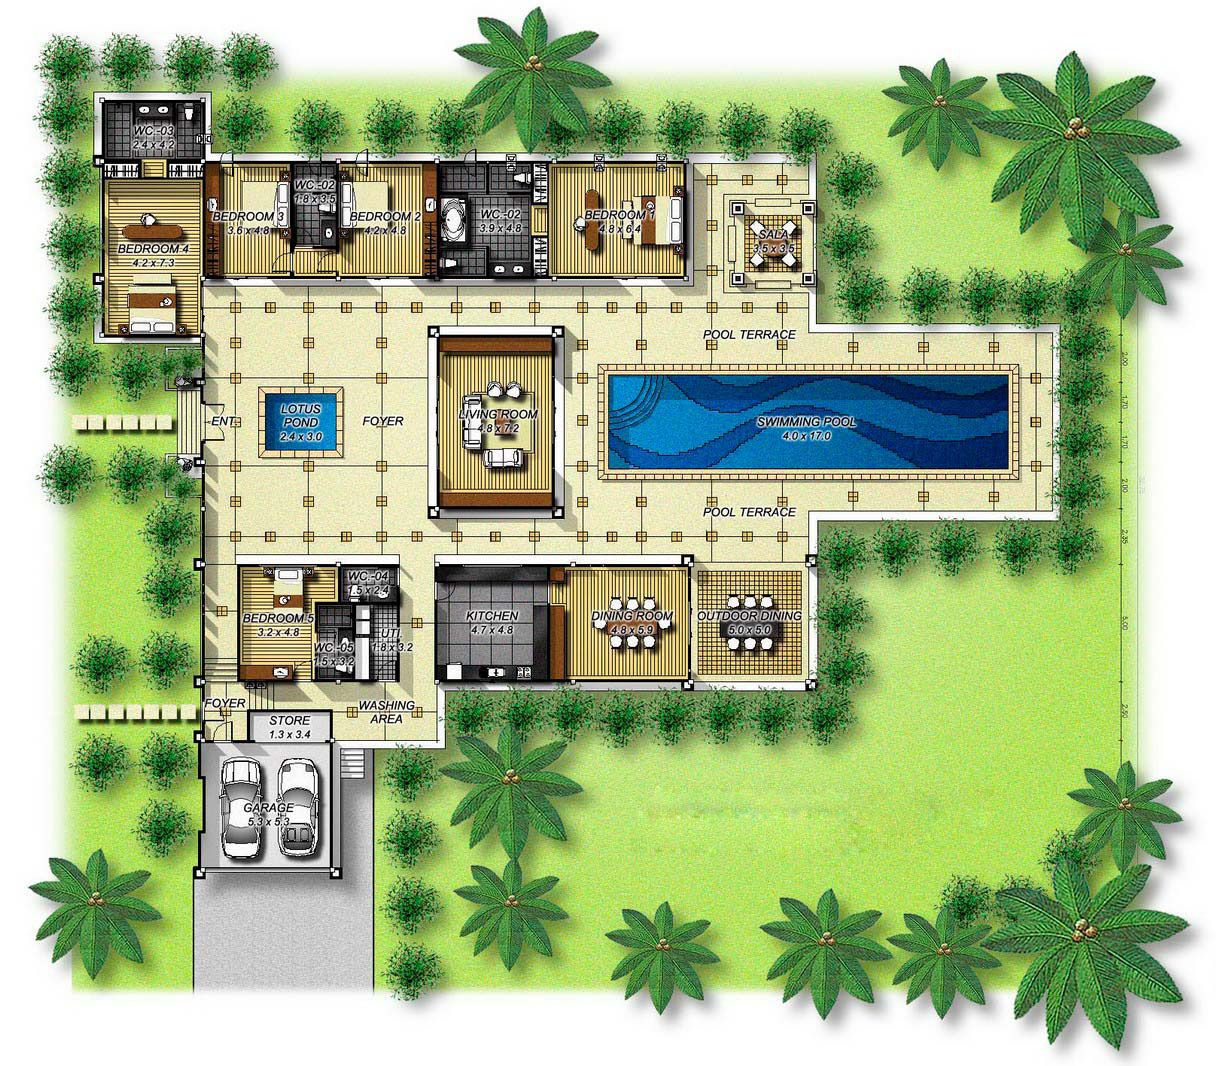 House plans with courtyards in the center central Home design sites